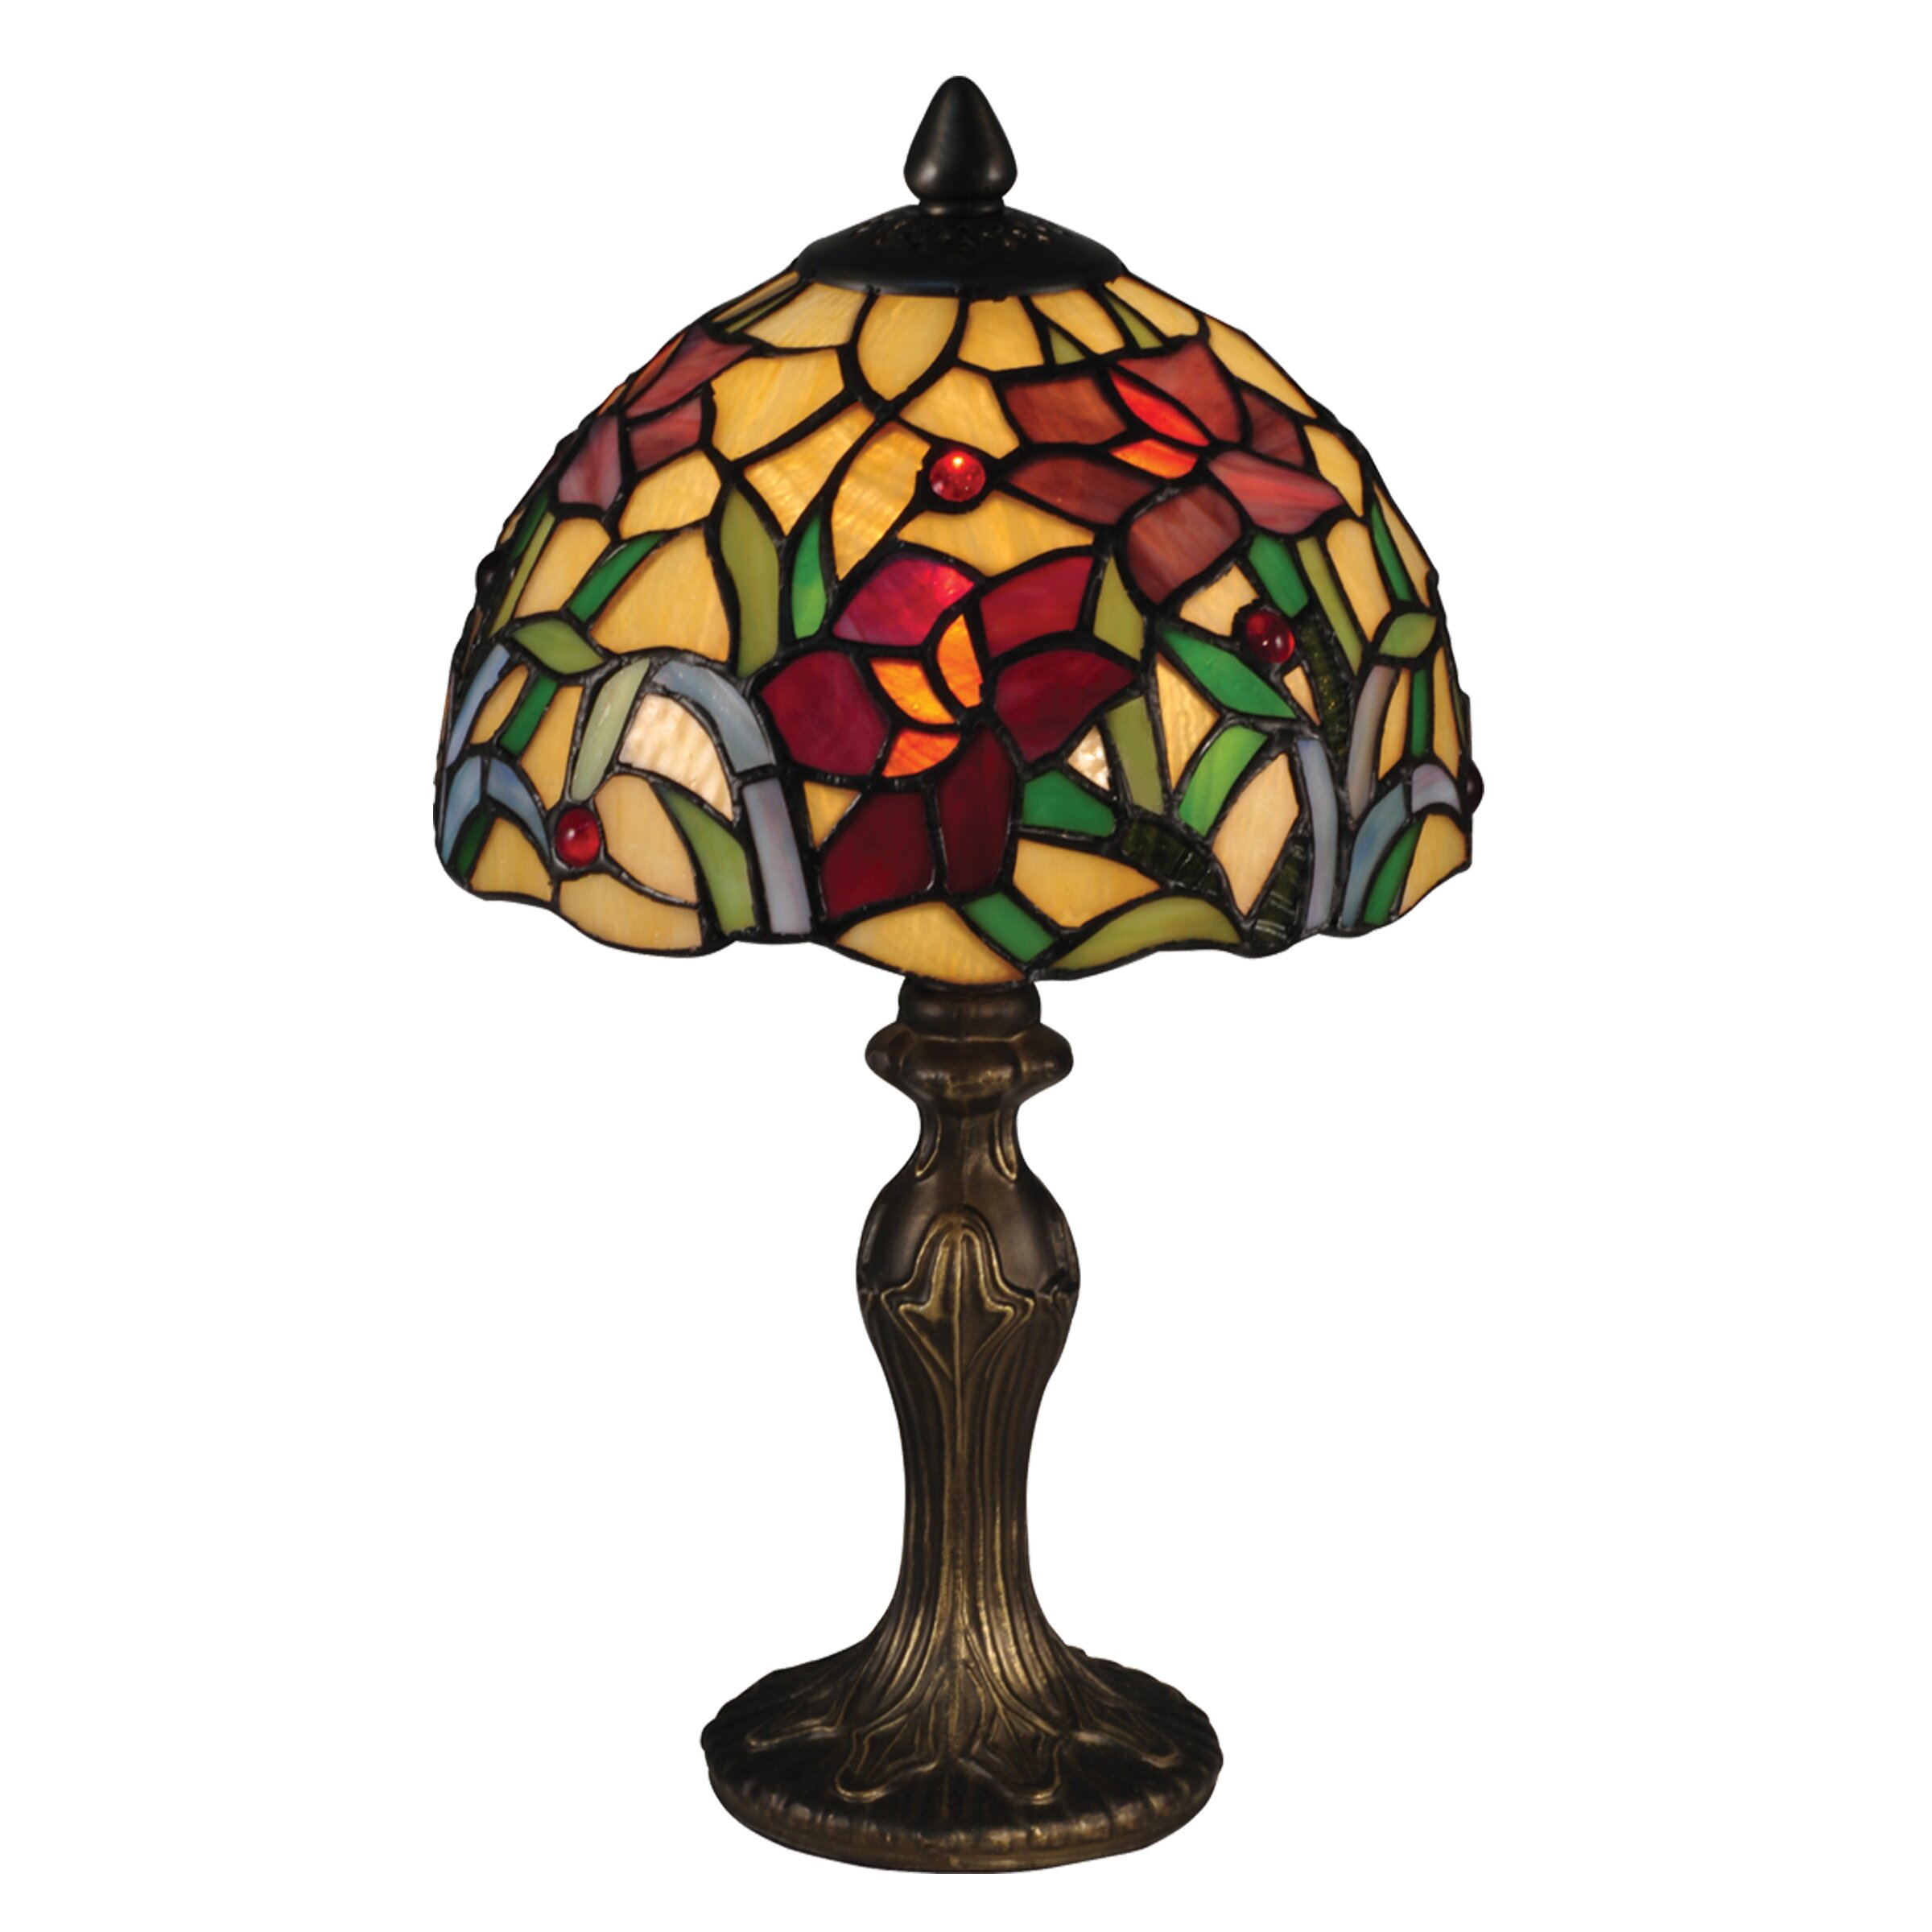 lighting lamps table lamps dale tiffany sku dt4200. Black Bedroom Furniture Sets. Home Design Ideas